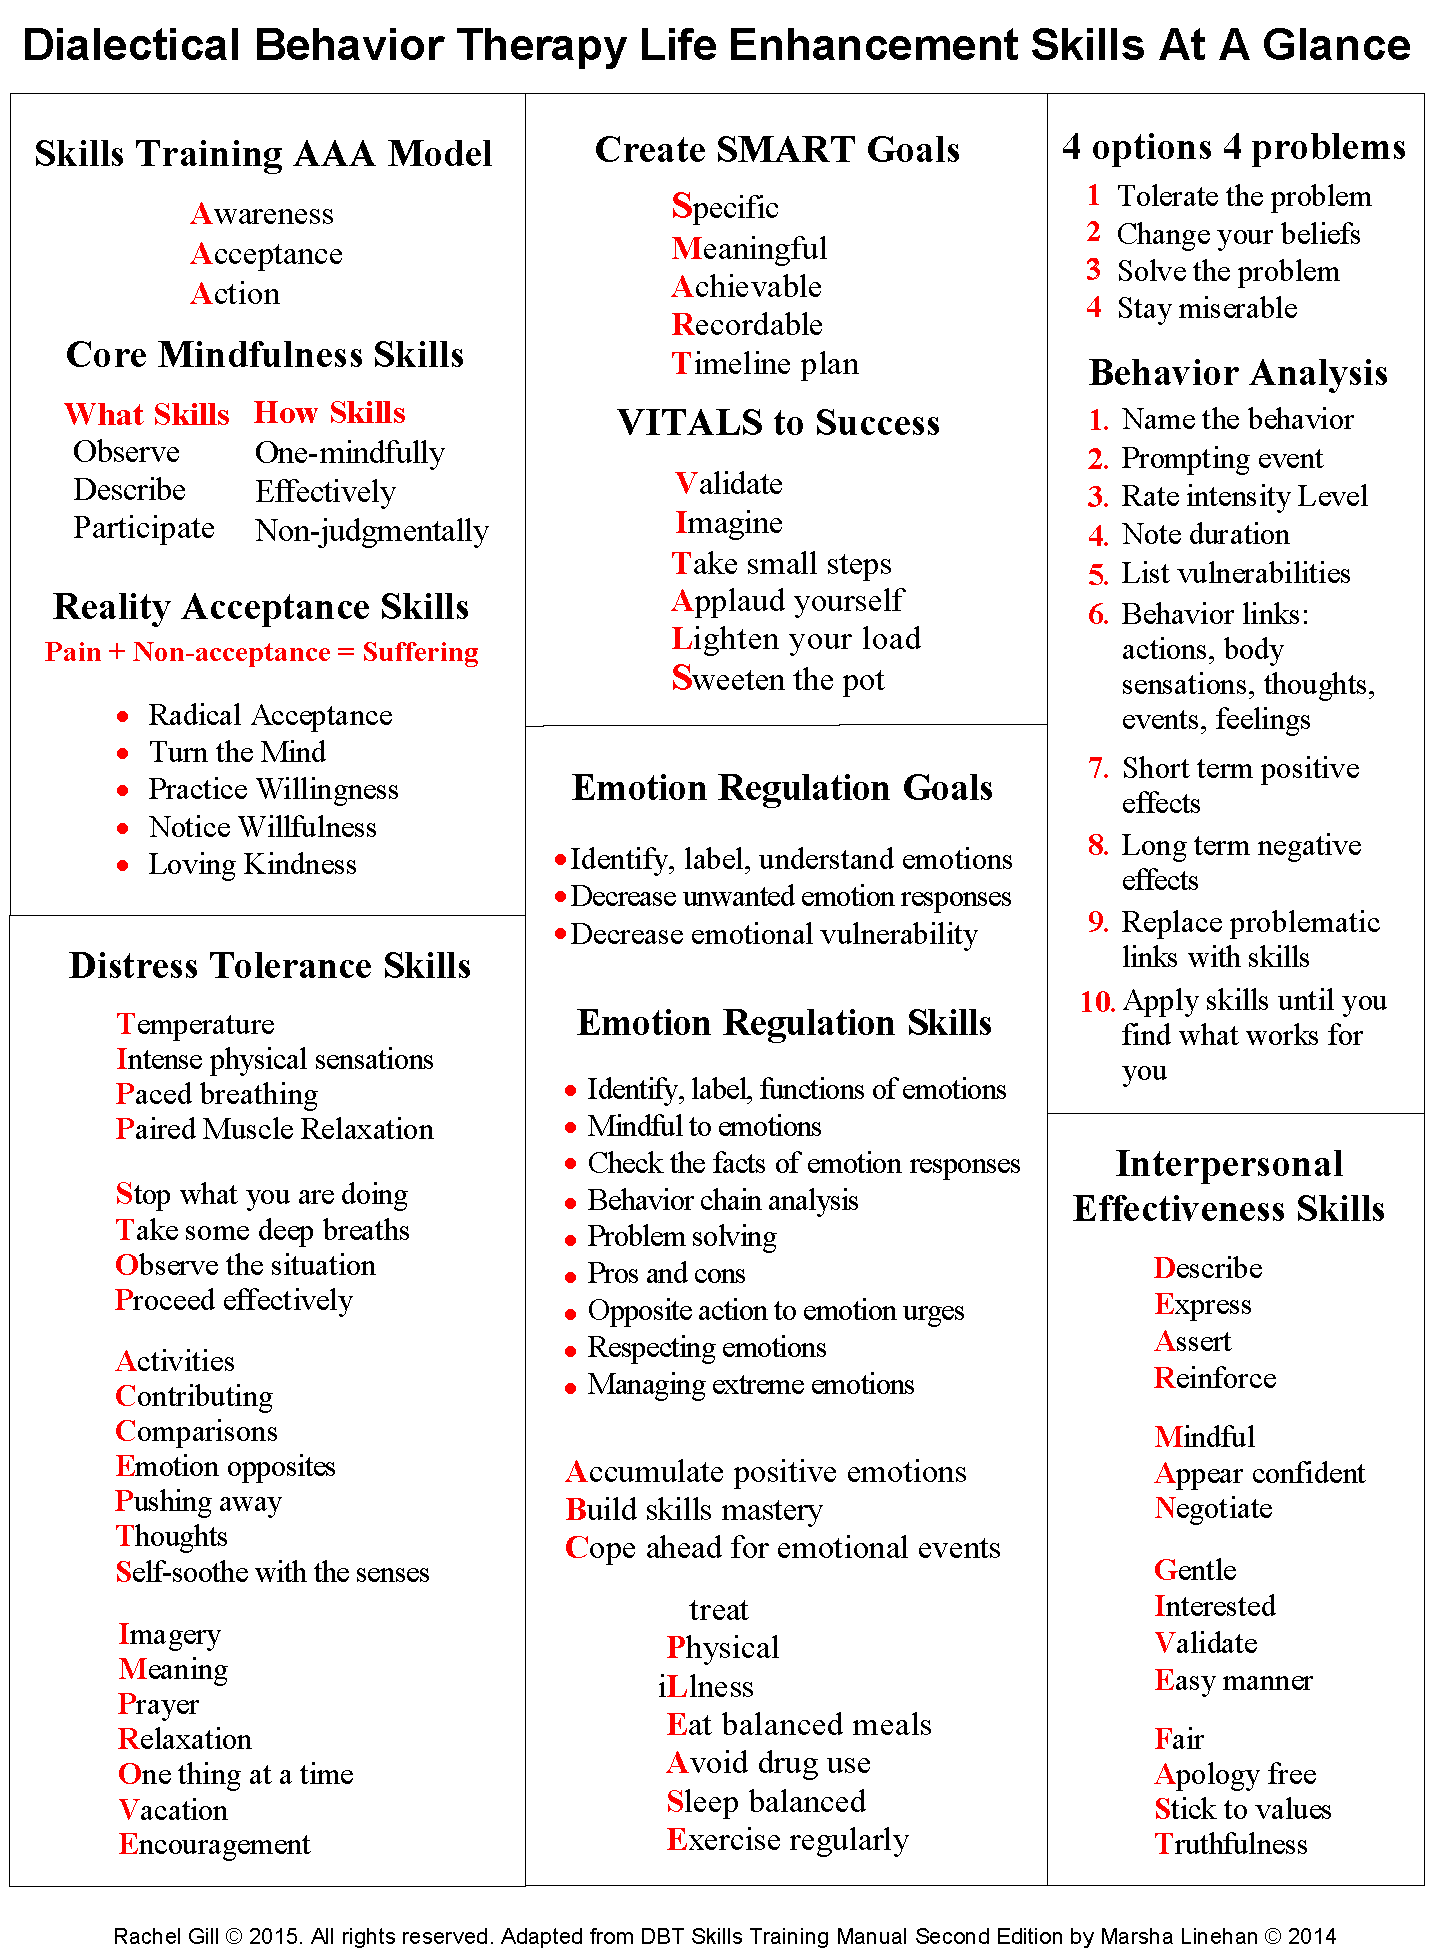 Dbt Skills Training Modules Handouts Amp Worksheets Dbt Skills At A Glance Dbt Skills Quick